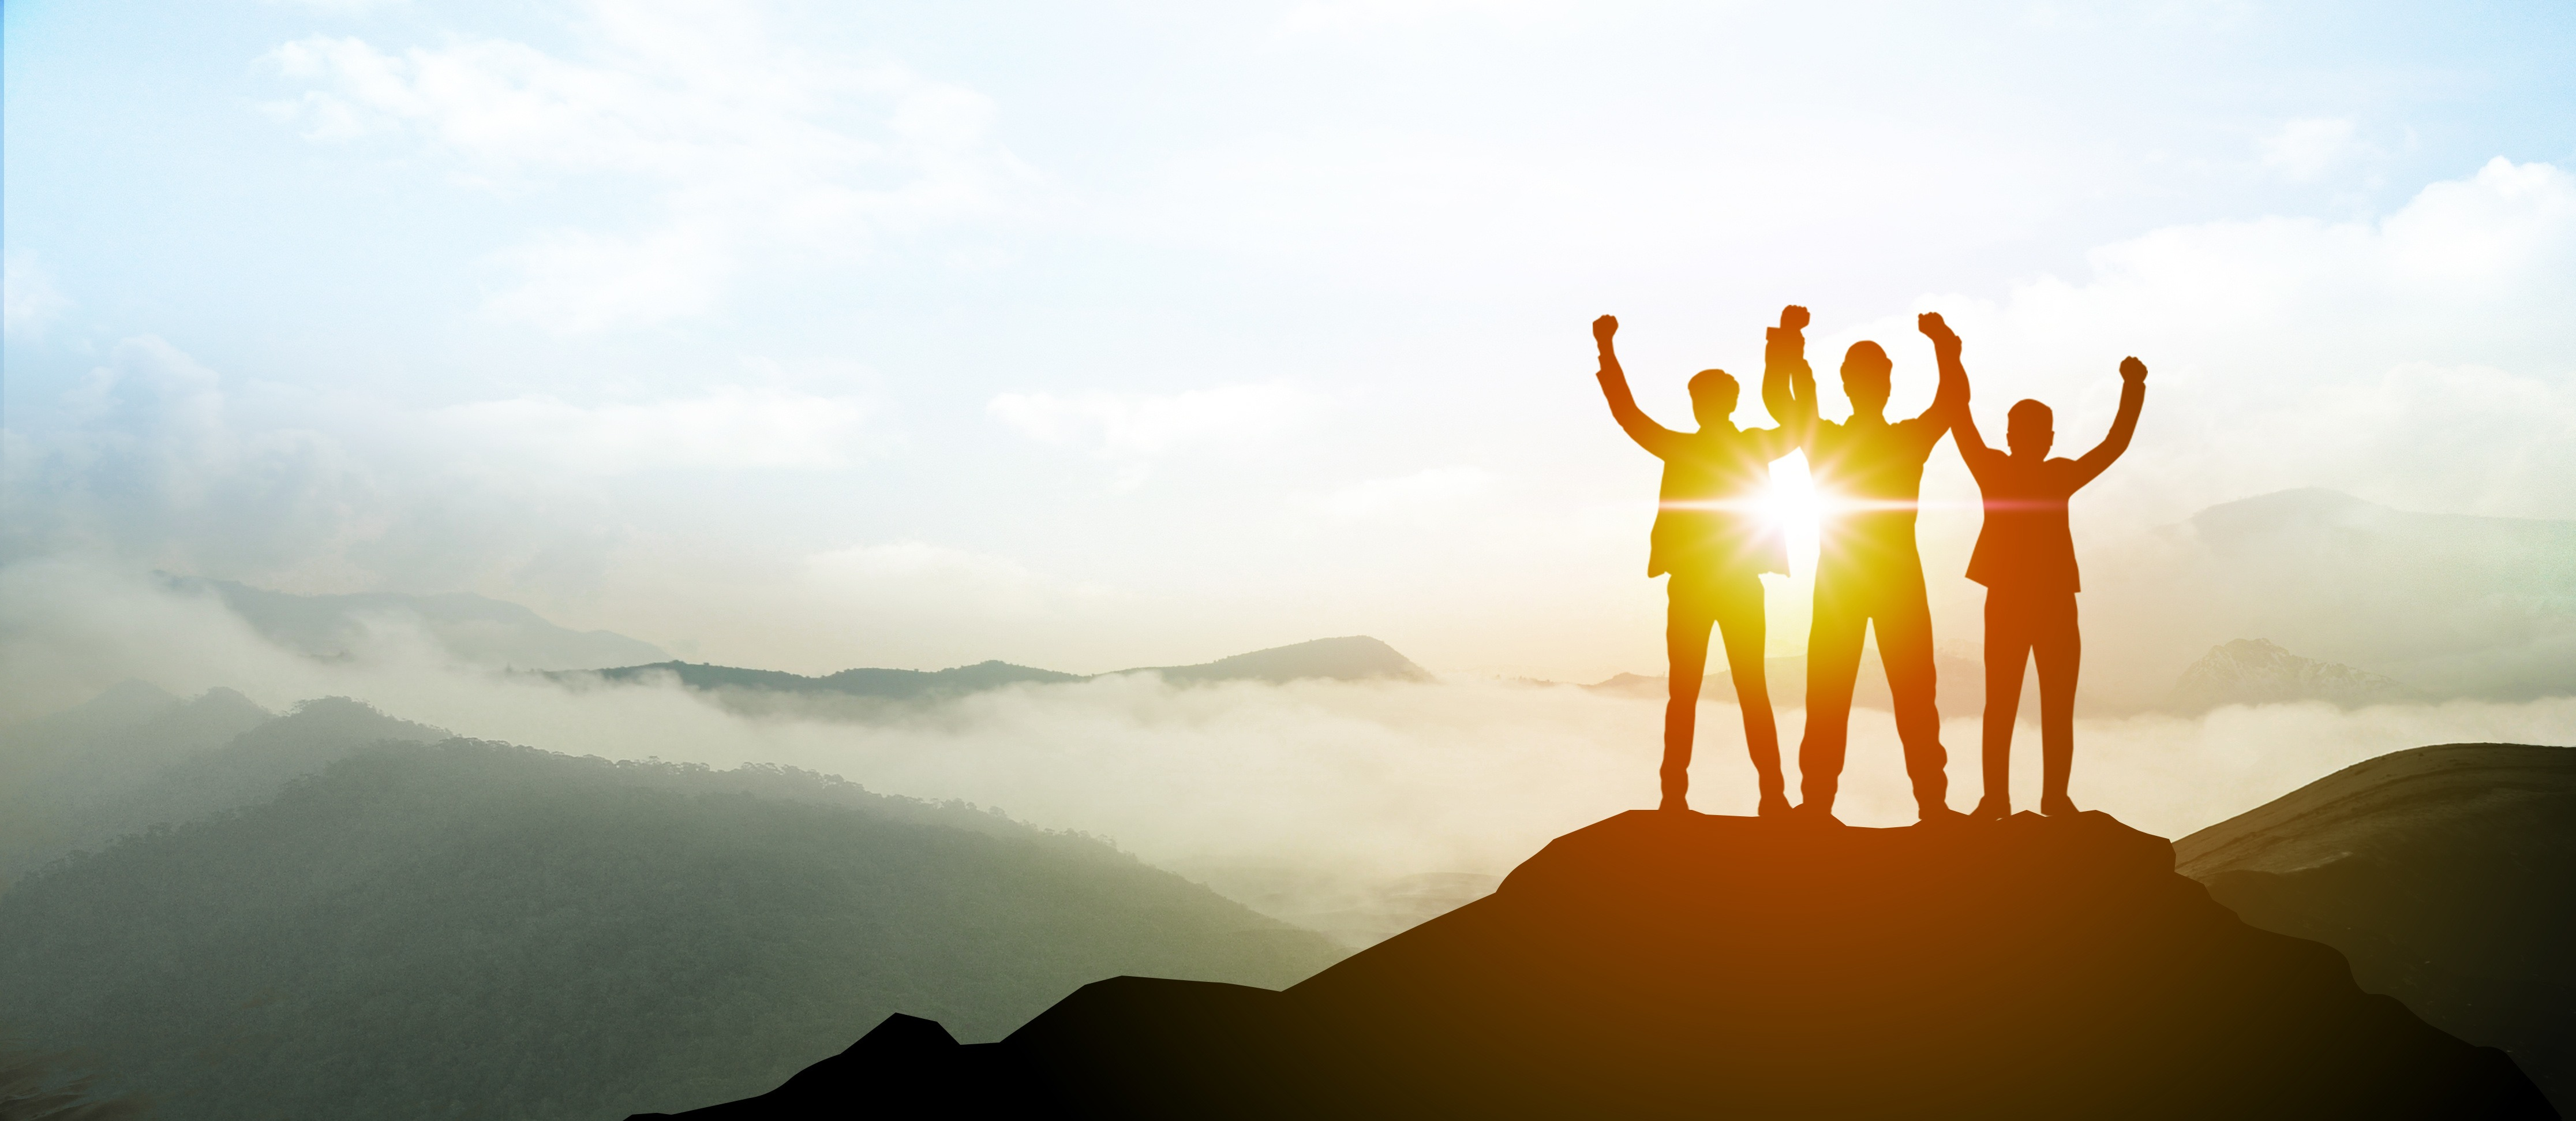 Team of 3 on top of a hill with the sun in background